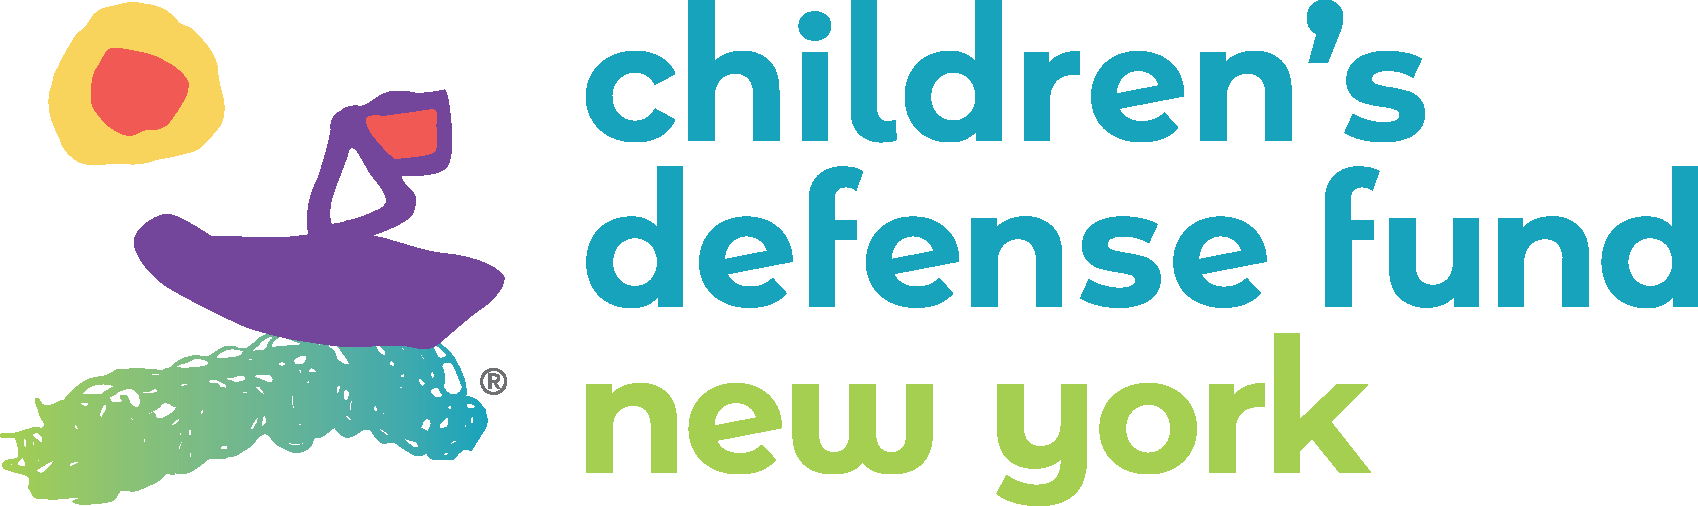 Children's Defense Fund - New York